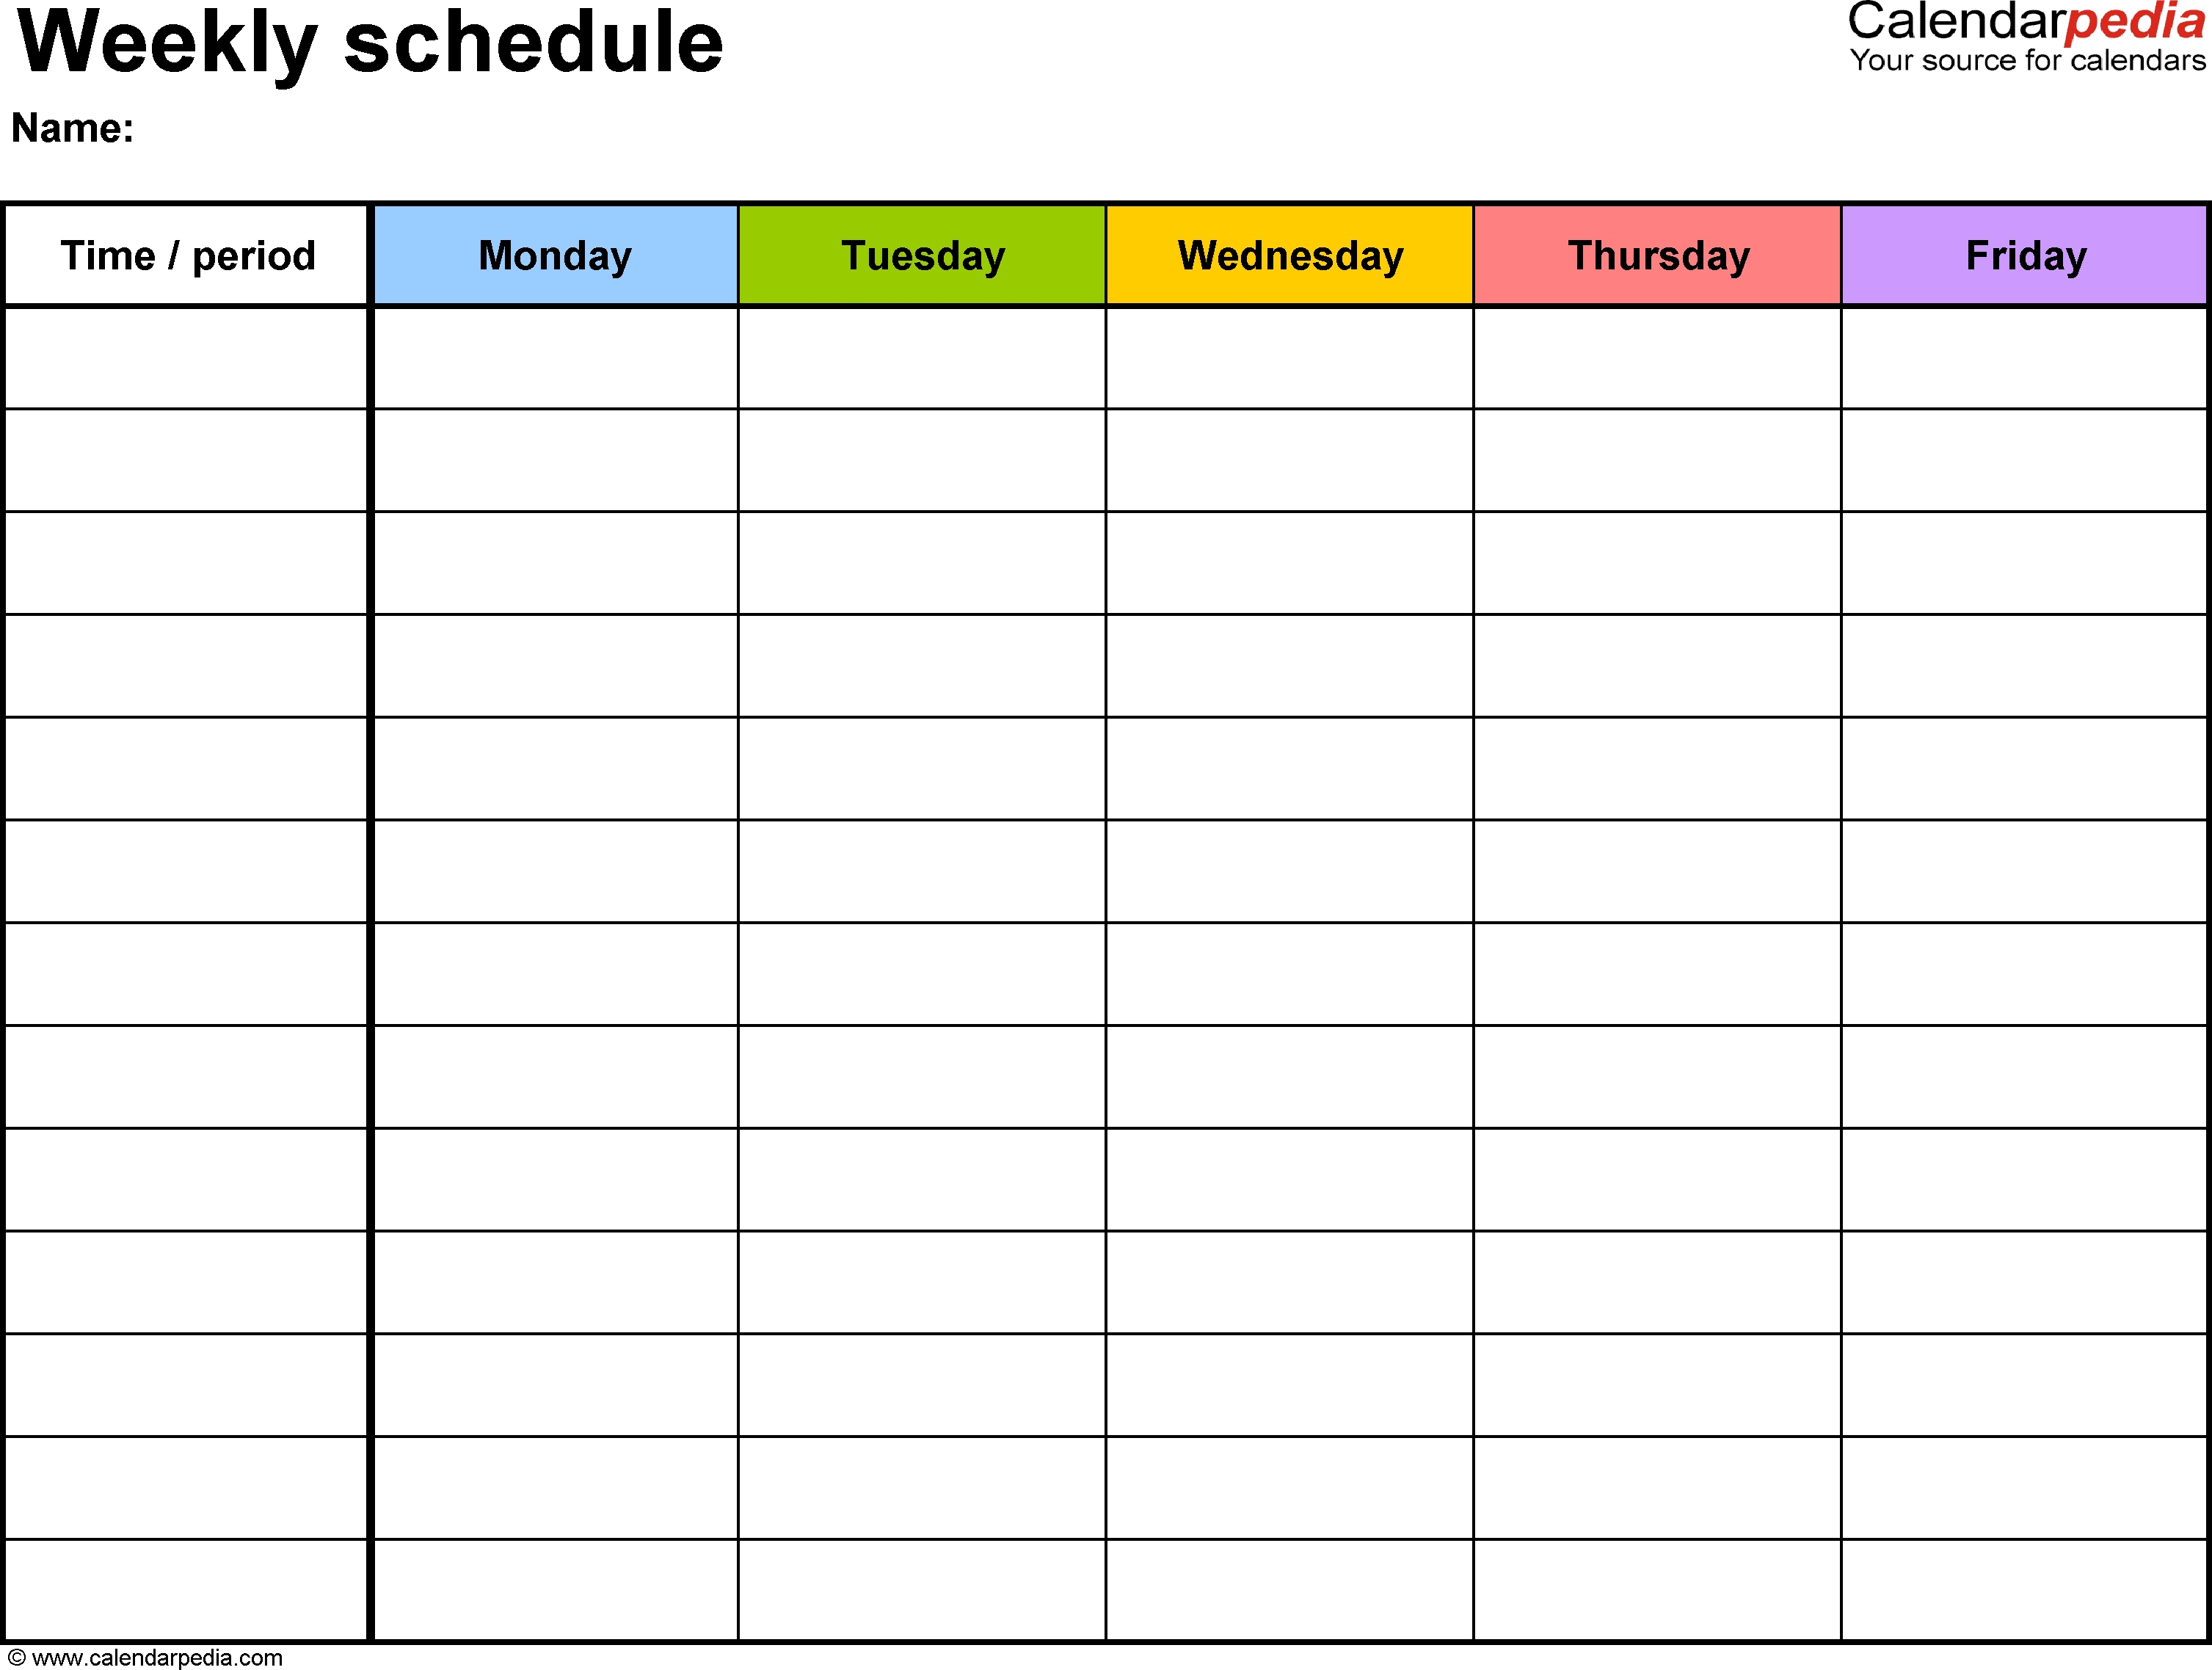 Free Weekly Schedule Templates For Pdf - 18 Templates  Free Printable Blank Weekly Calendars